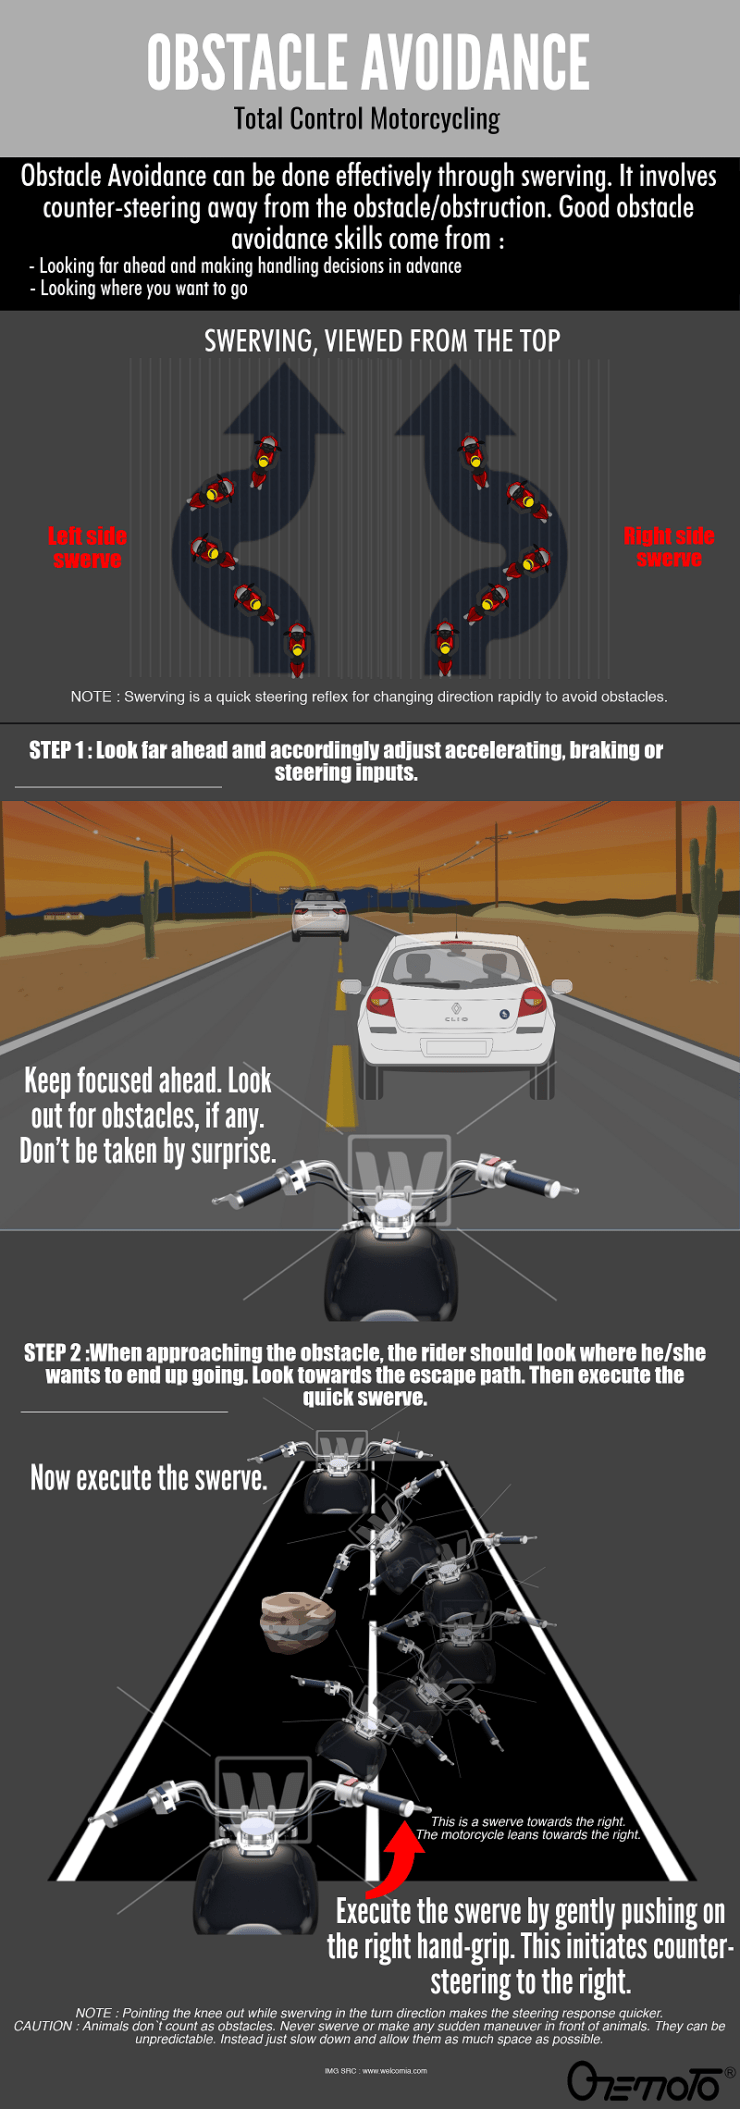 Obstacle avoidance and swerving